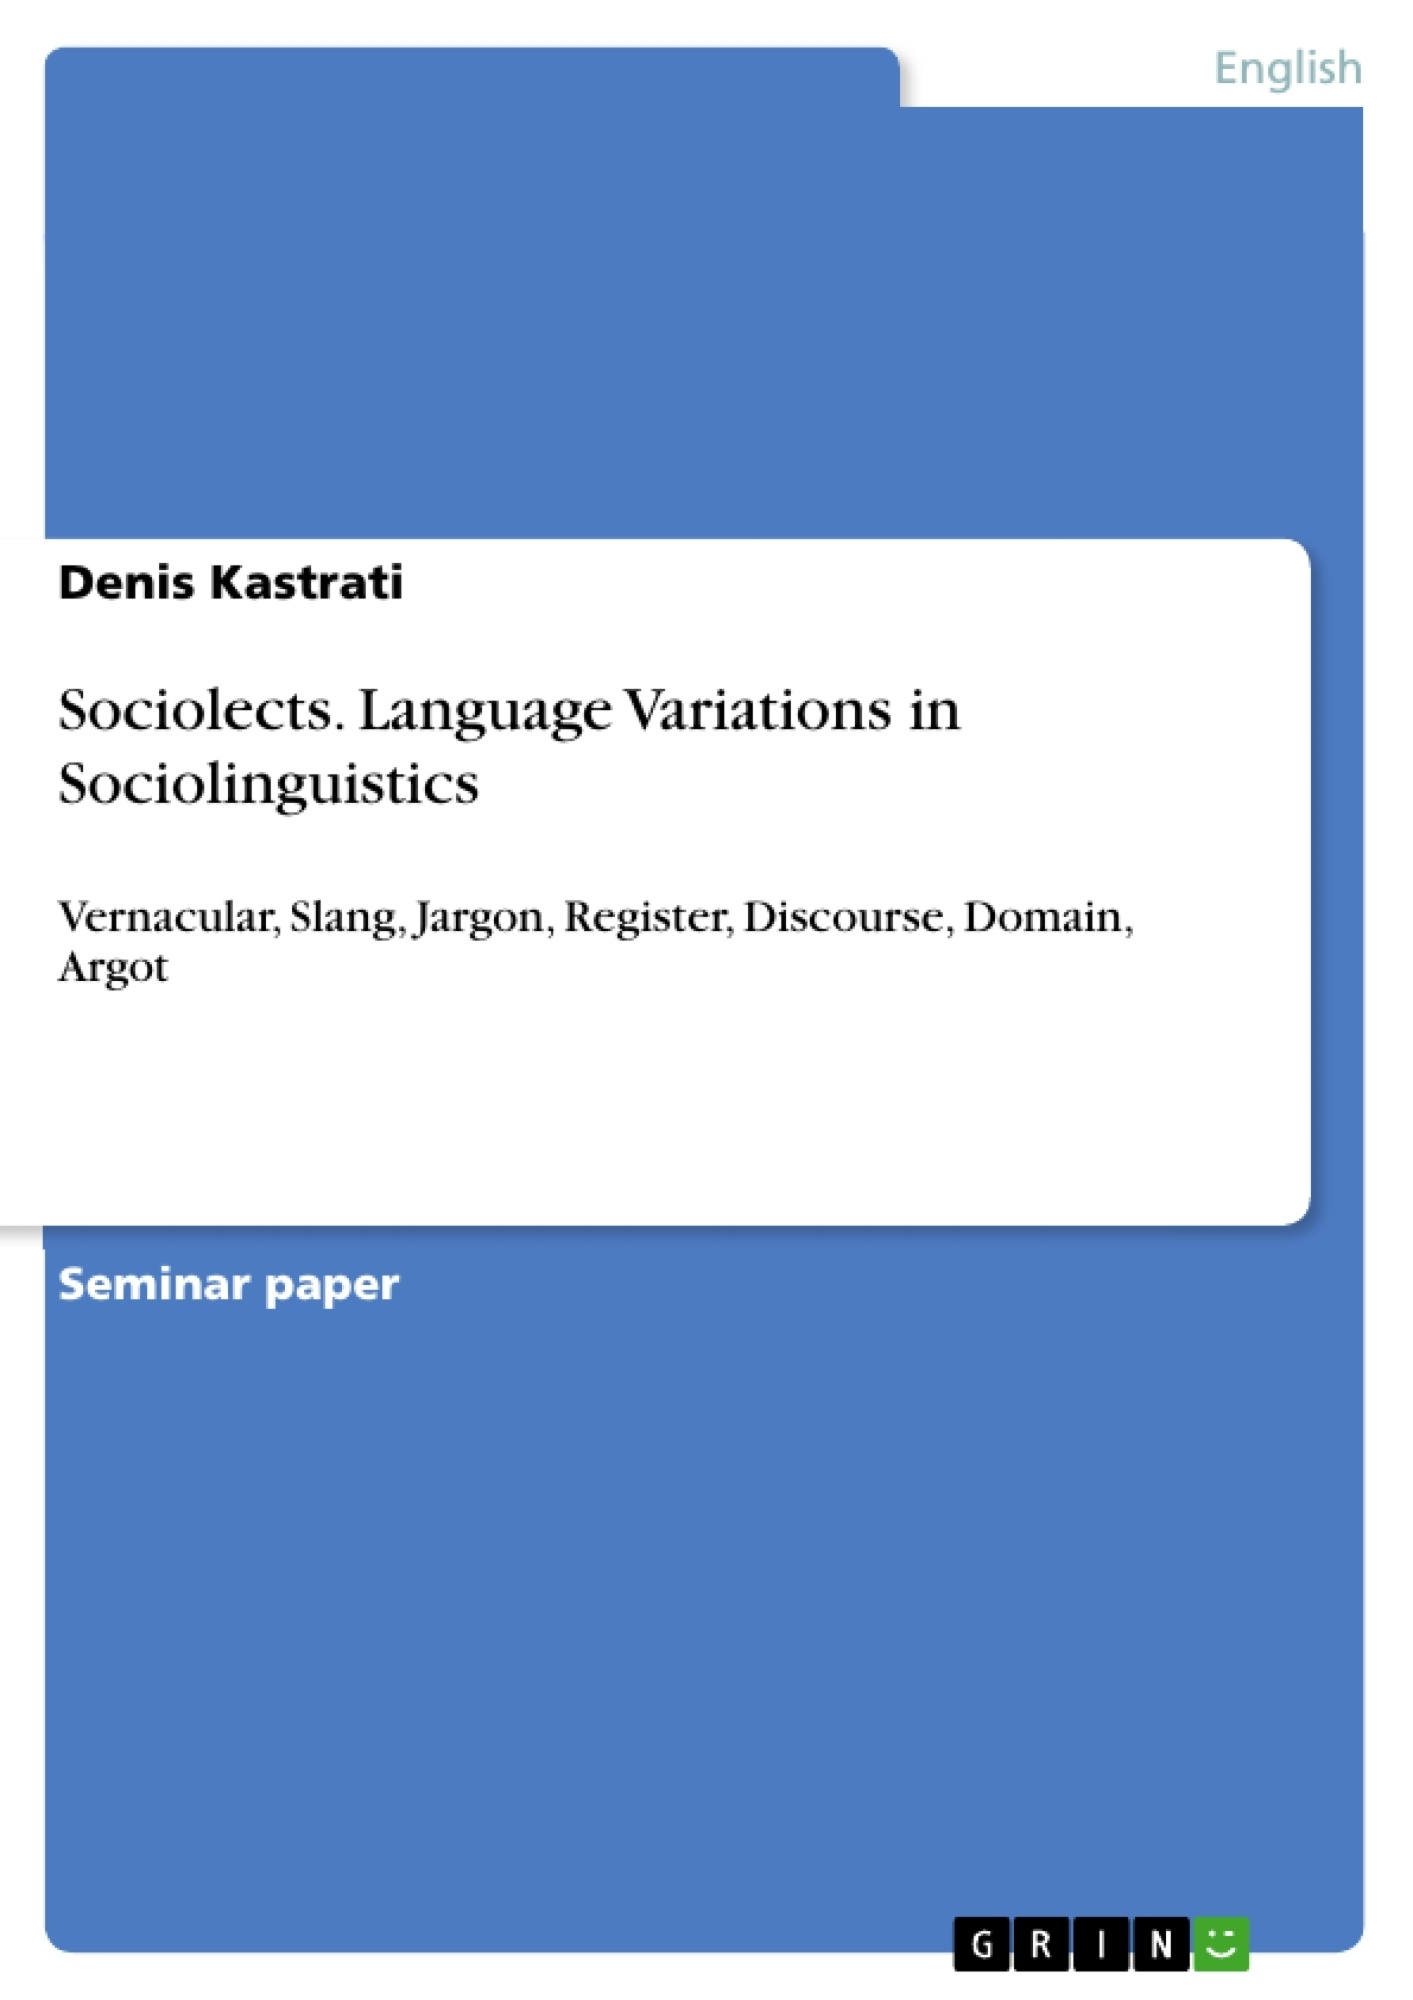 Title: Sociolects. Language Variations in Sociolinguistics